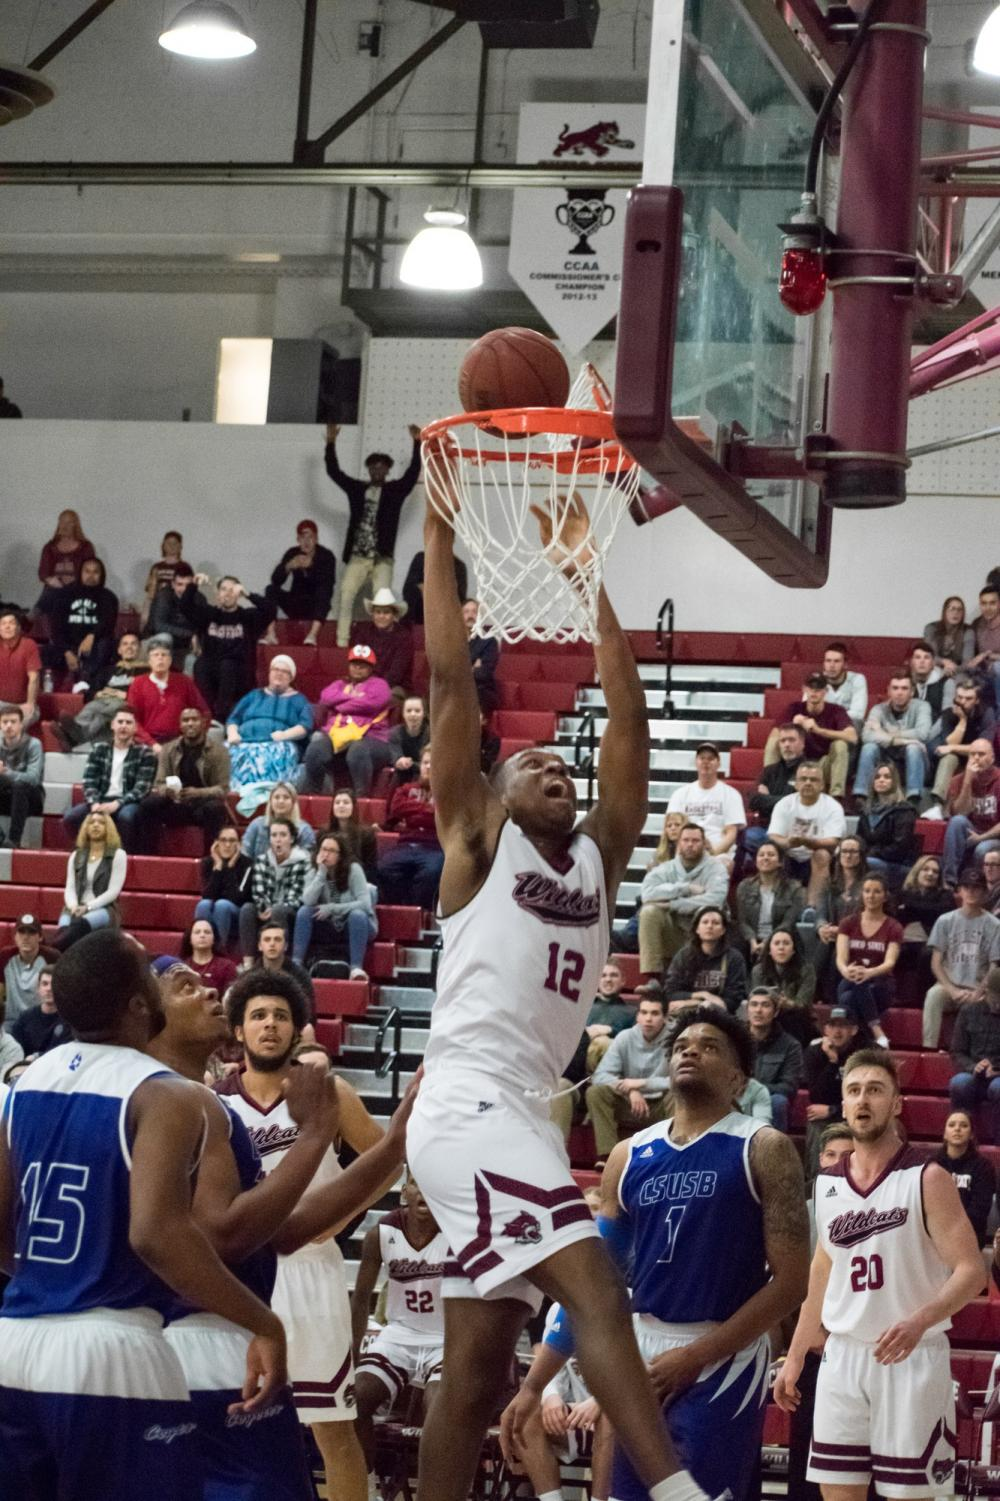 Junior forward, Marvin Timothy throws down a dunk for the Wildcats. Photo credit: Kate Angeles